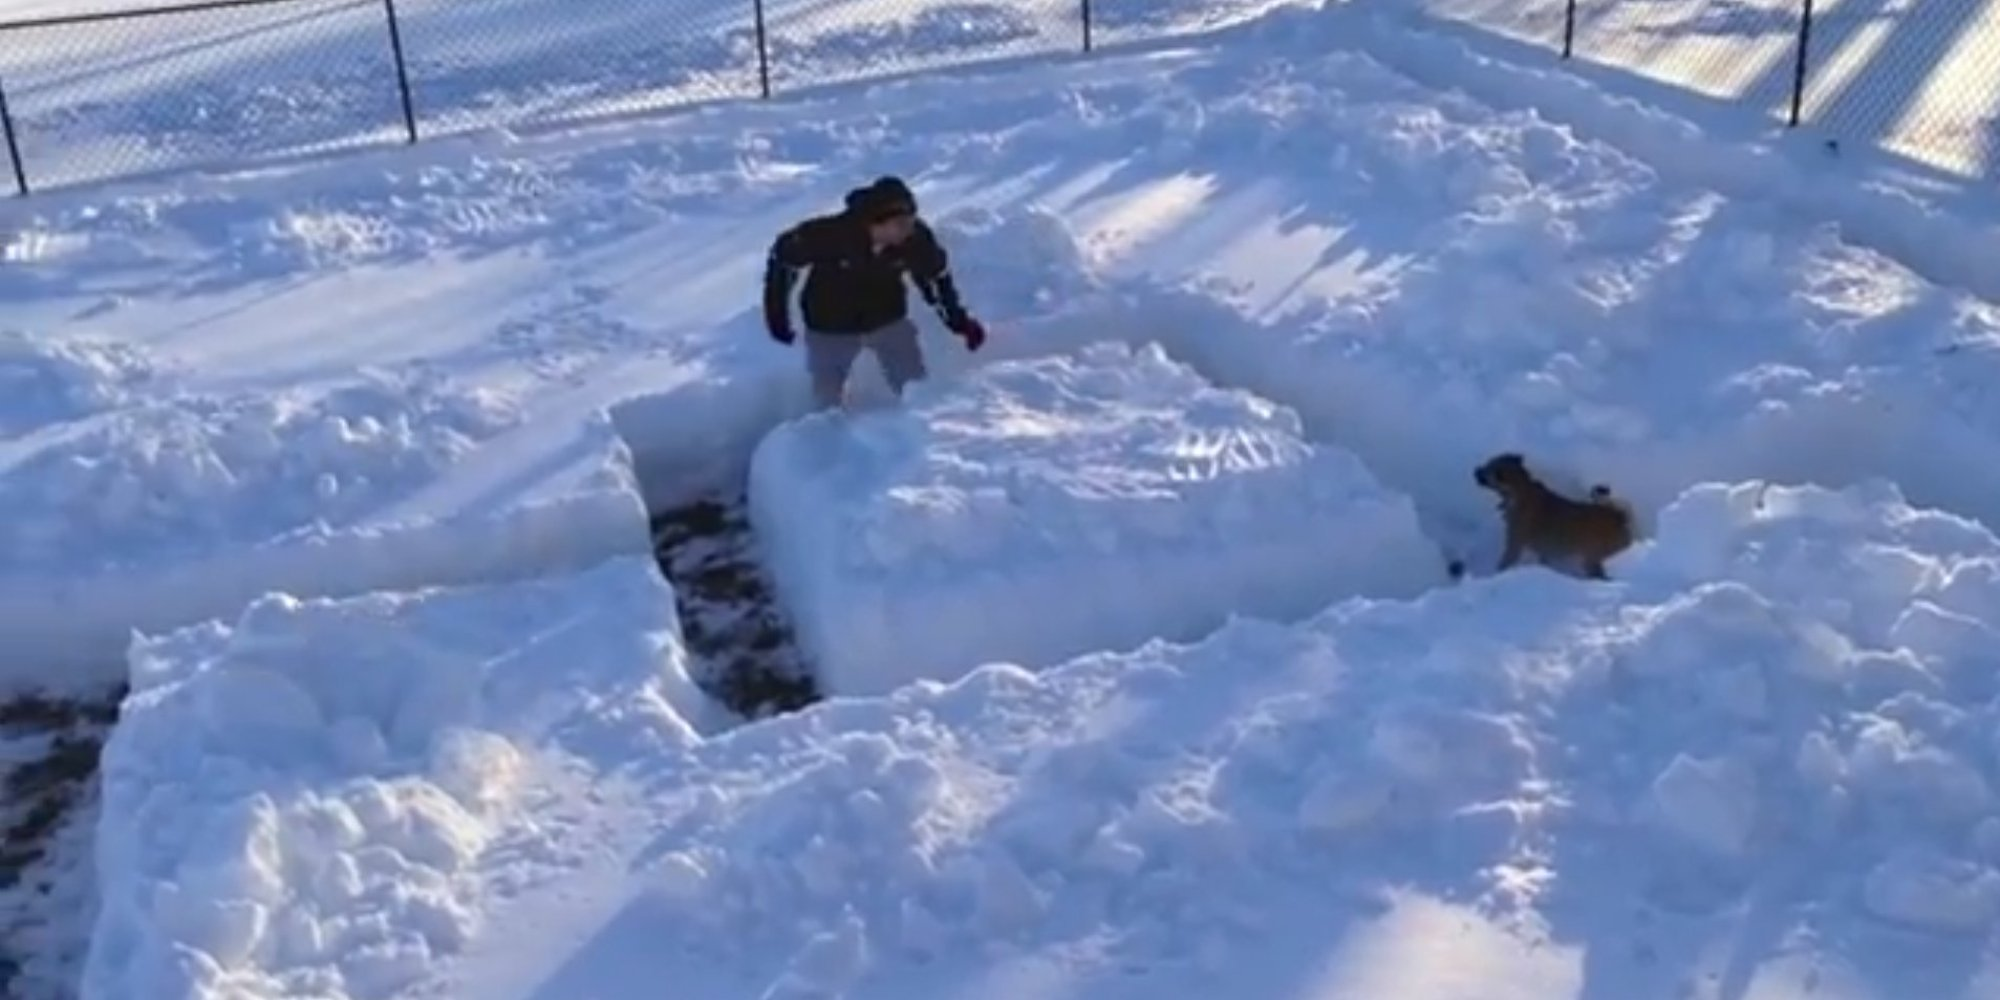 Dog Cheats His Way Out Of Snow Maze (VIDEO) | HuffPost UK